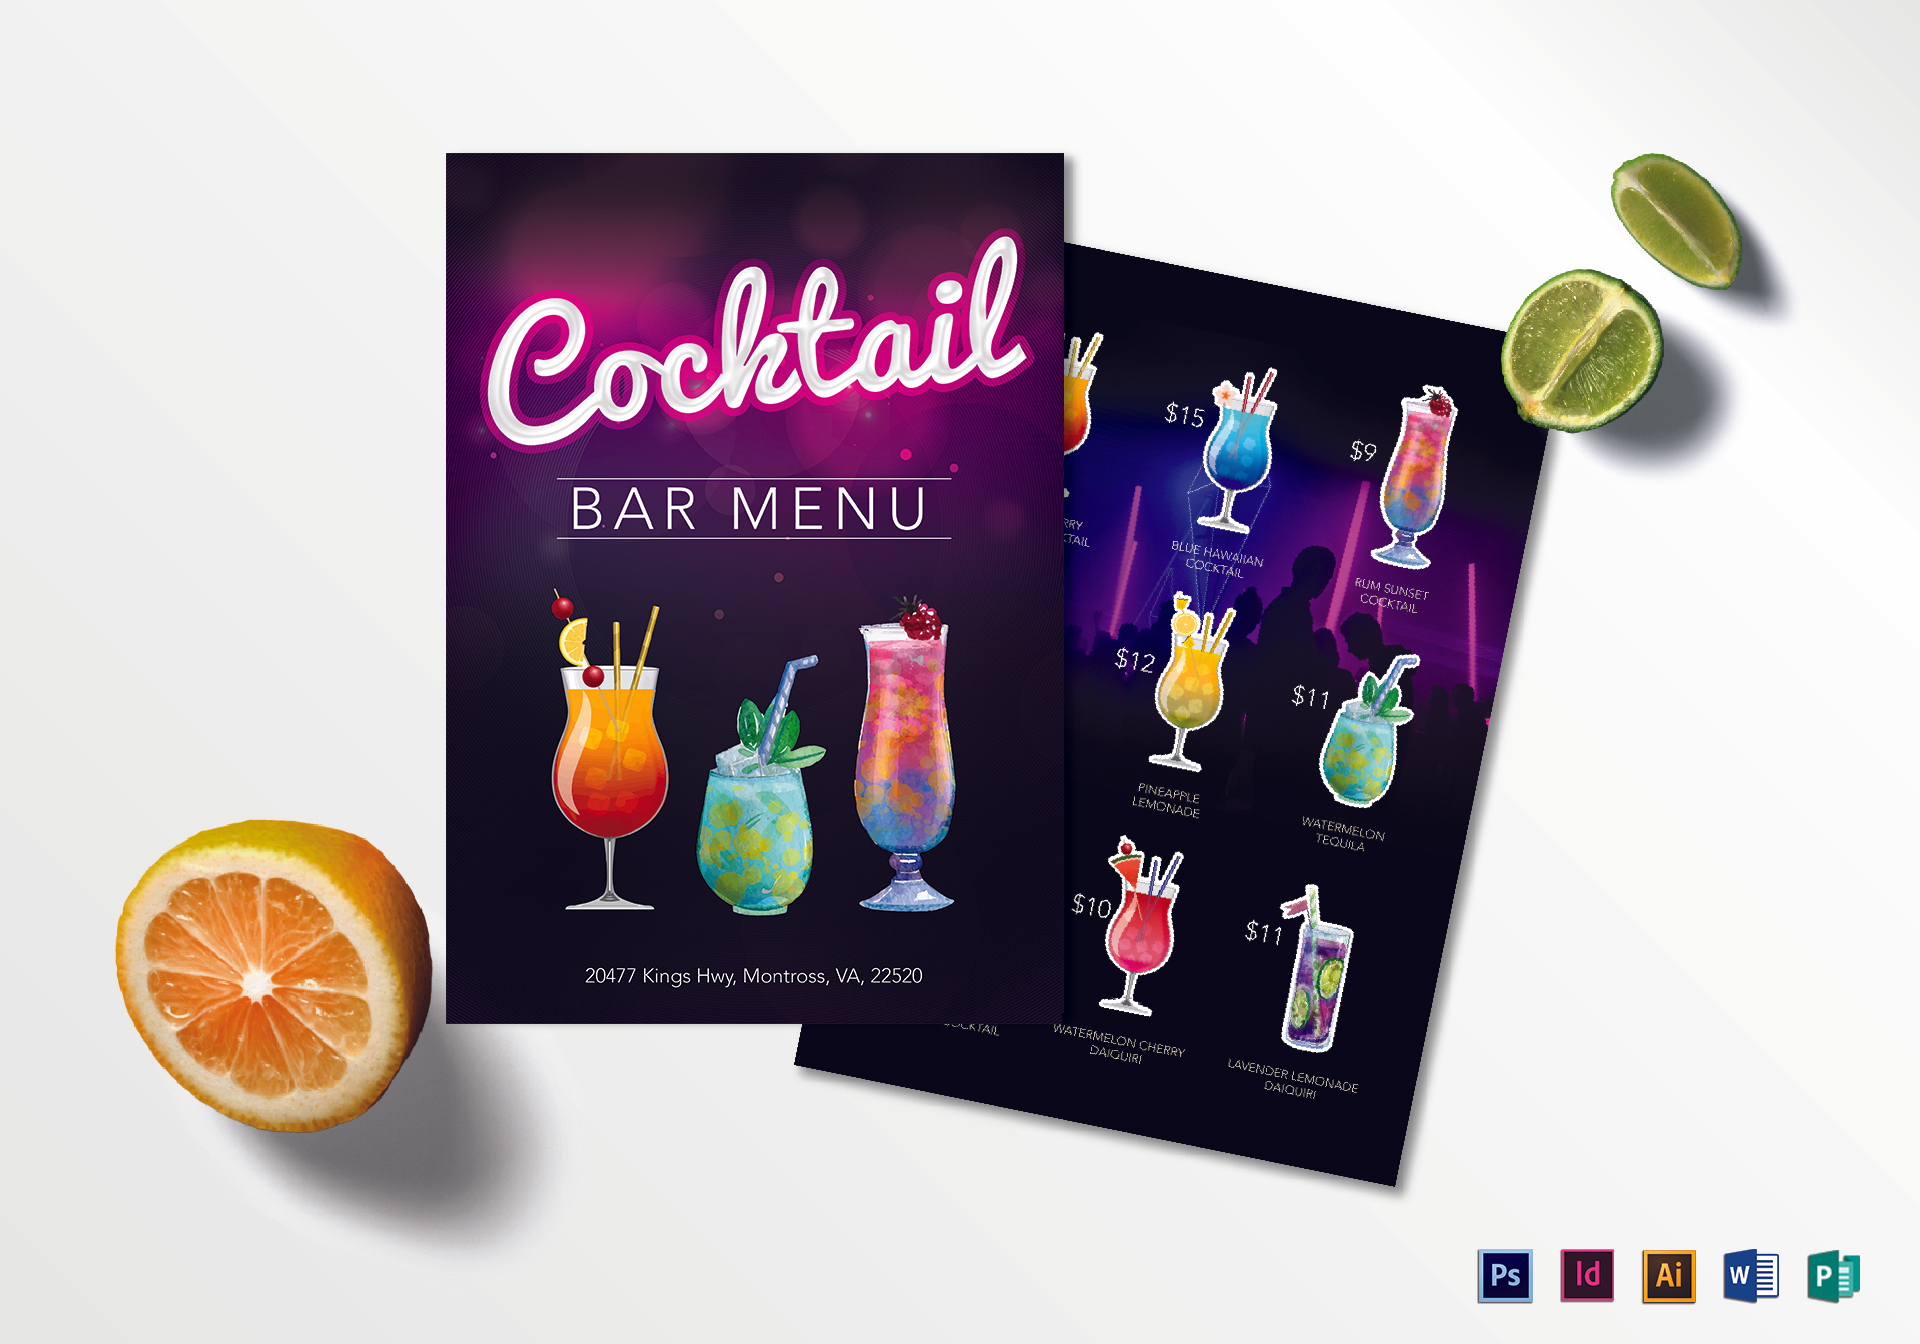 Cocktail Bar Menu Design Template